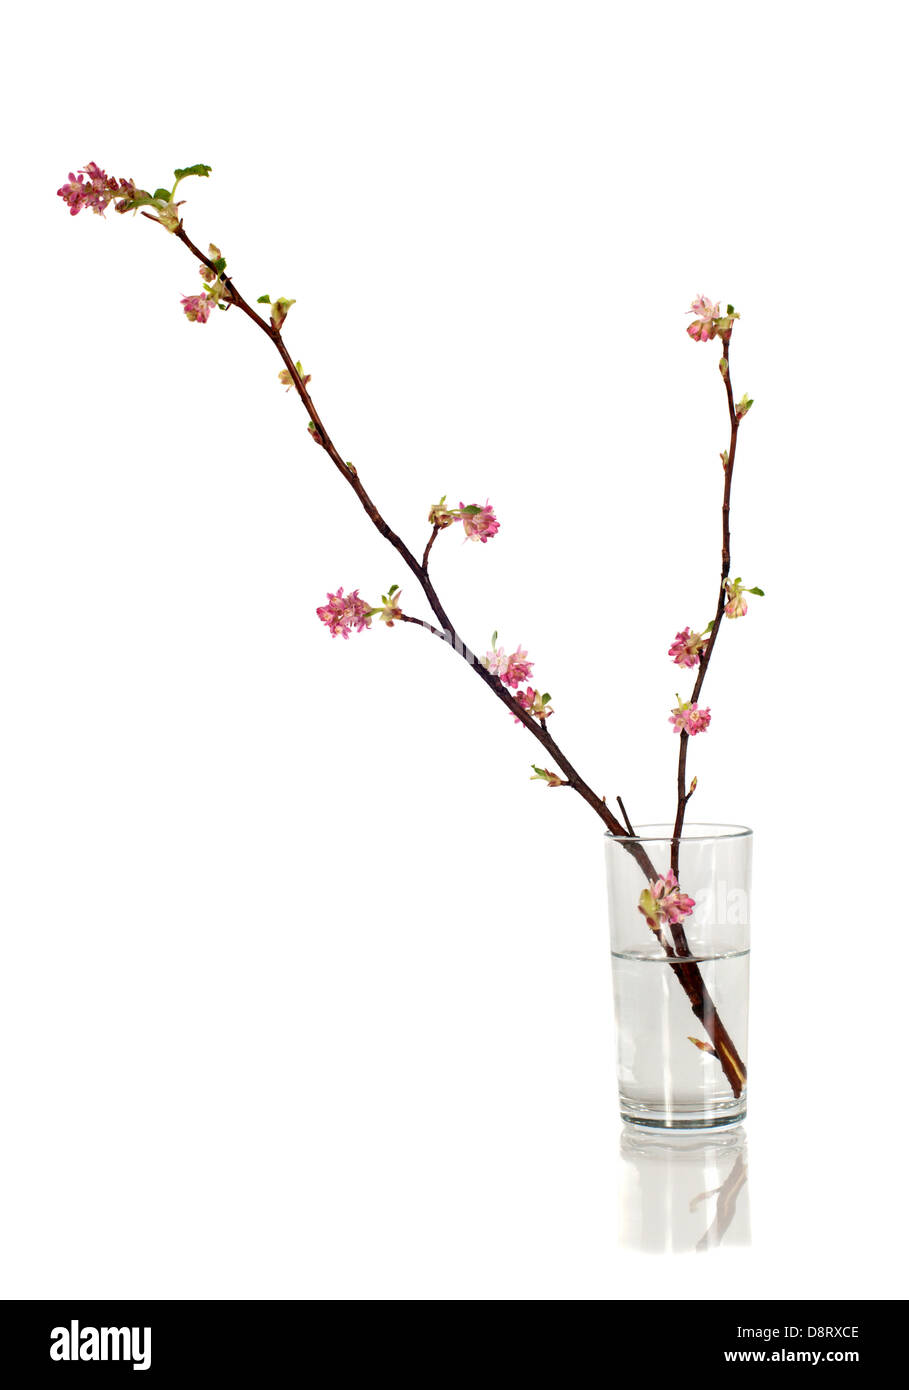 Black currant twig in blossom on white background Stock Photo